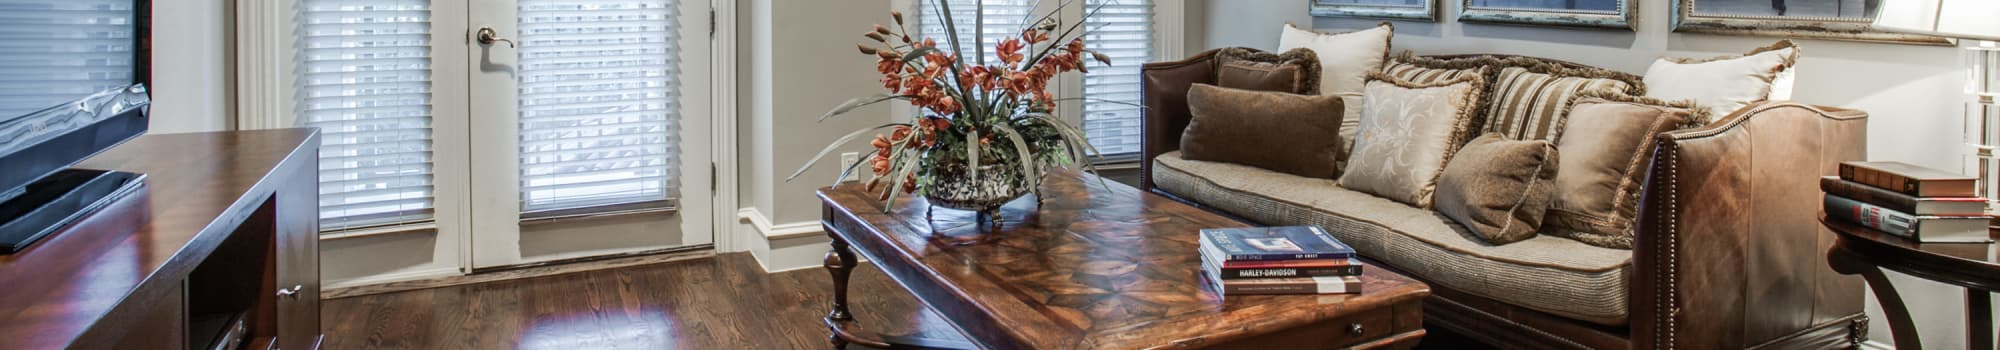 Schedule a tour of Rienzi at Turtle Creek Apartments in Dallas, Texas